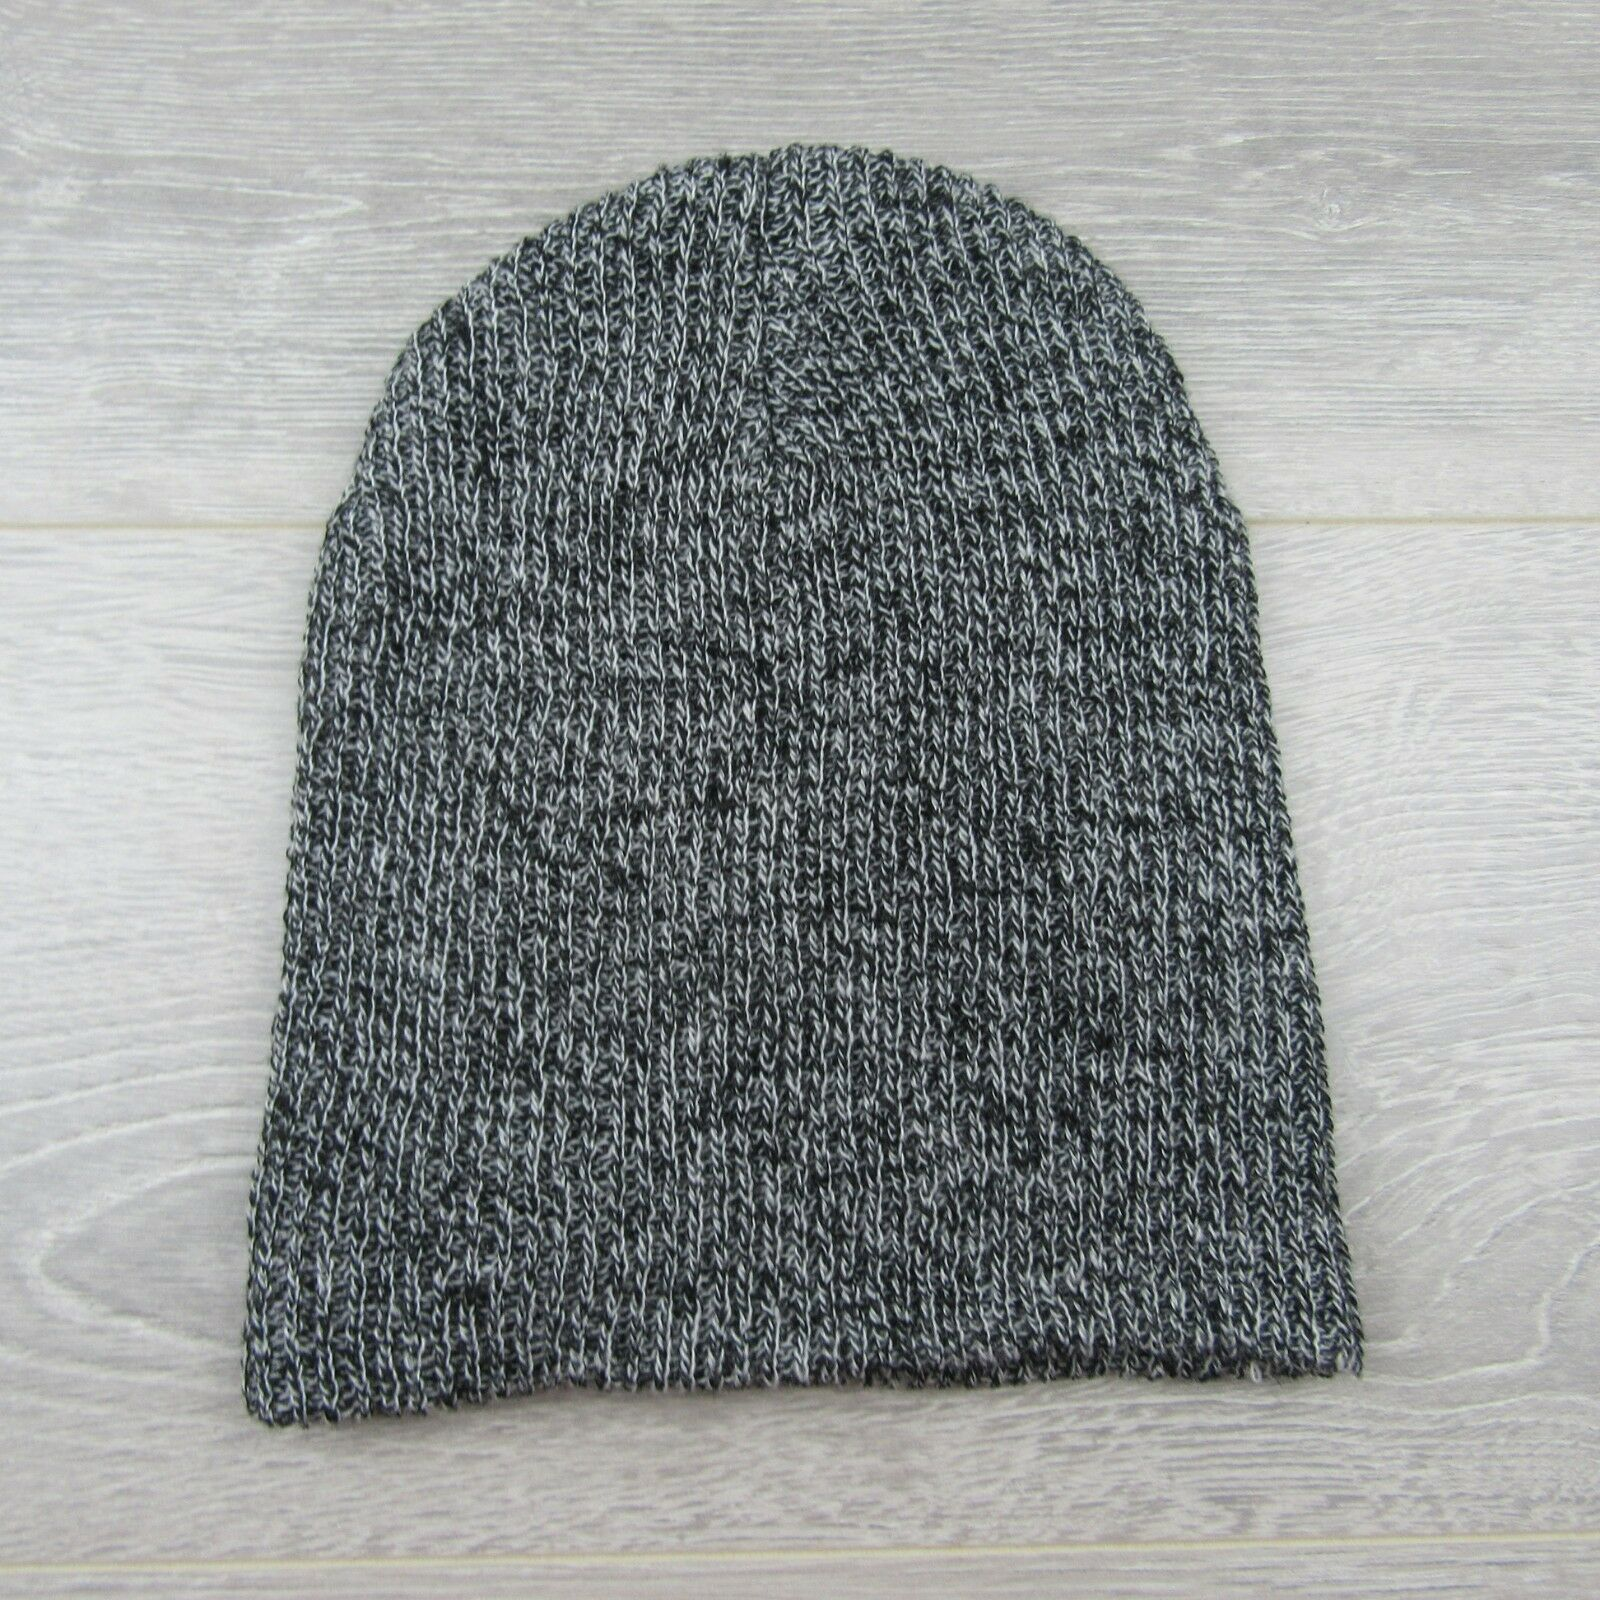 18582de59a7 Disney Collection Neff Mickey Mouse M28 Grey Beanie Unisex One Size Fit